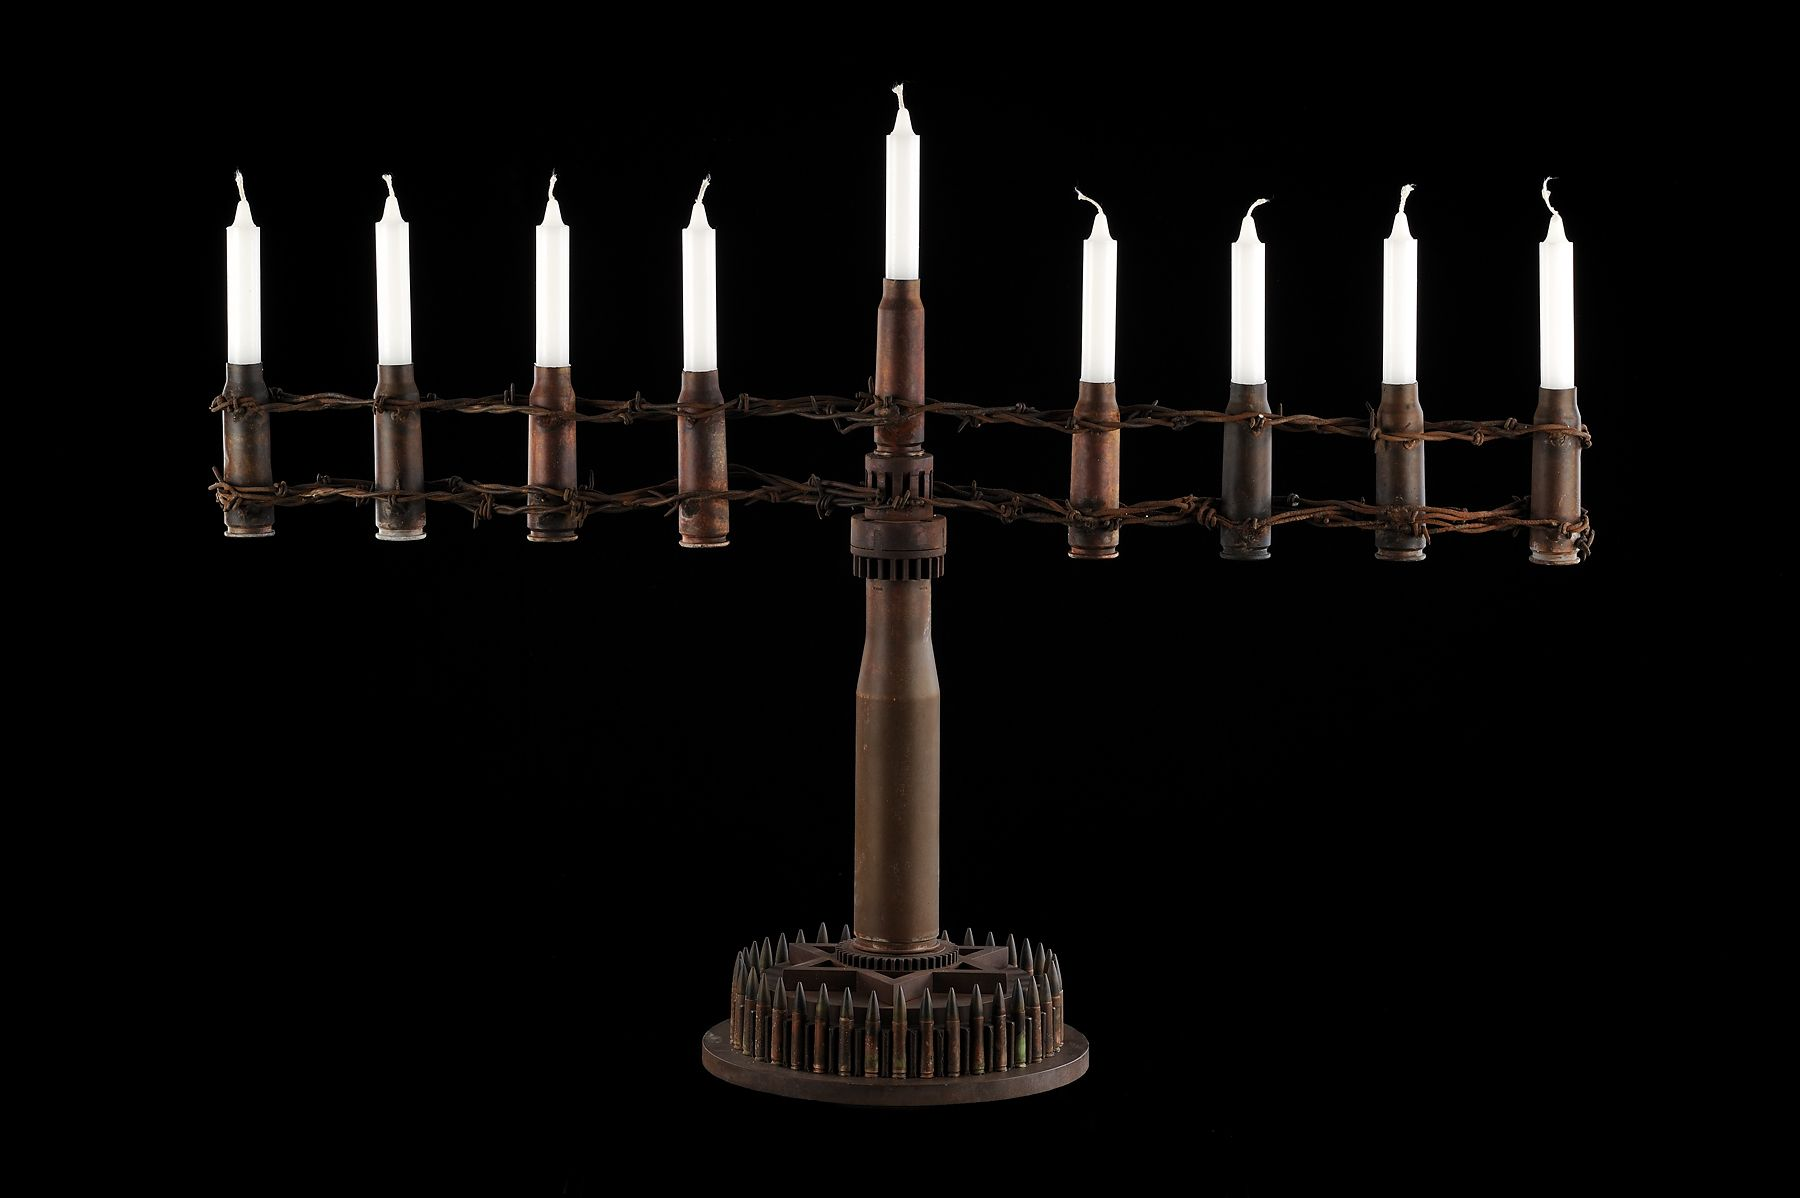 Al Farrow, Menorah (Fence II), 2011, shell casings, barbed wire, steel, 23 x 32 x 10 inches